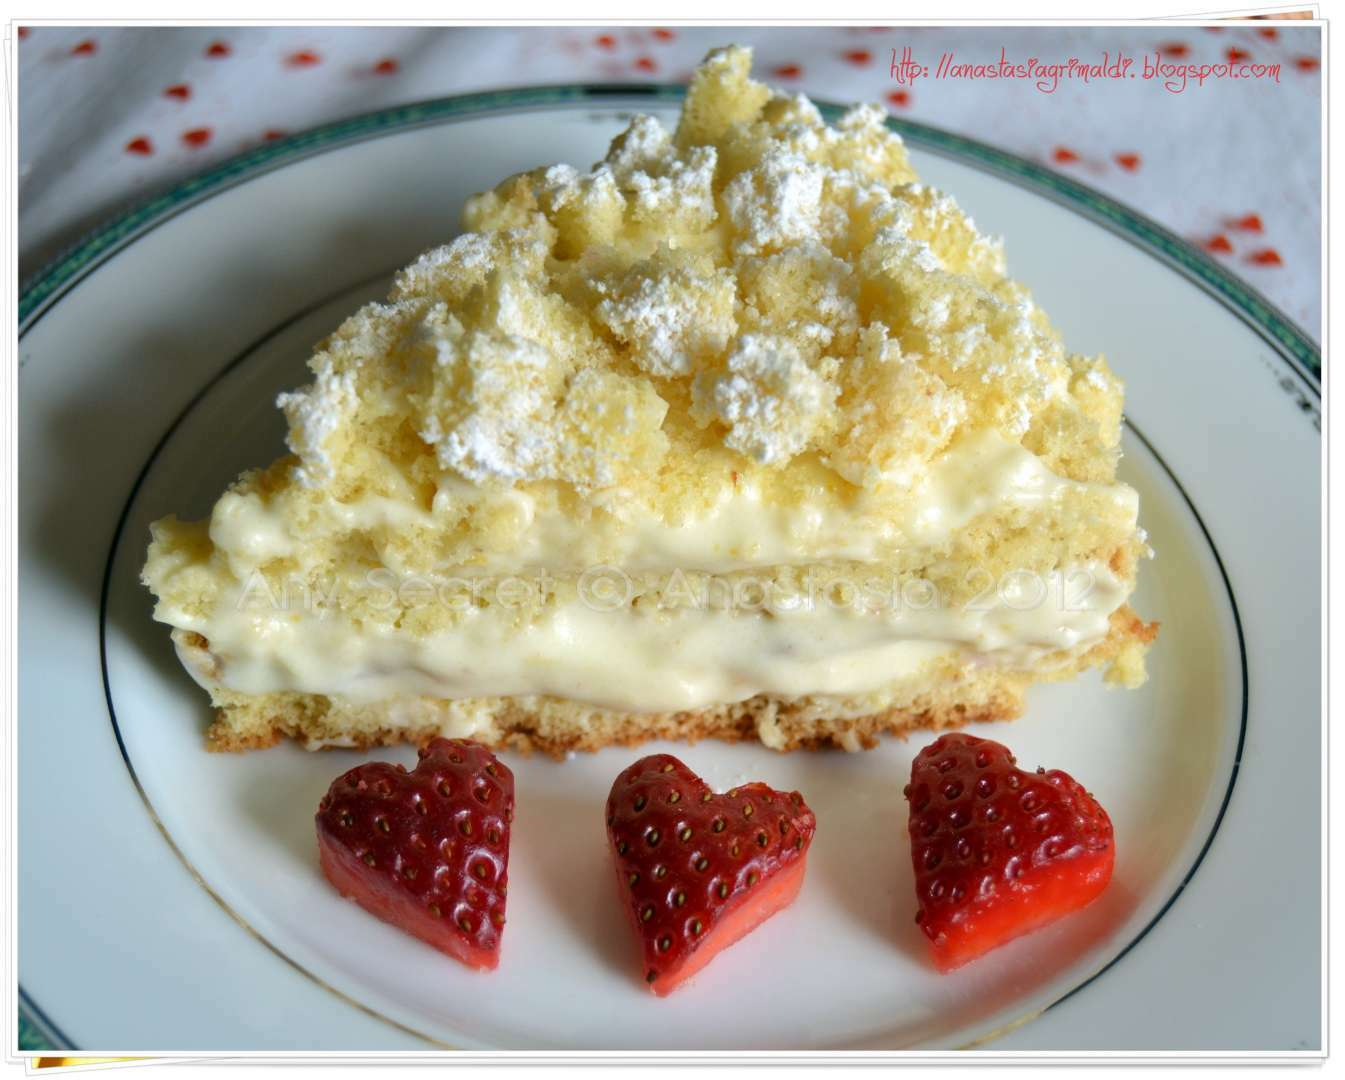 Torta con la crema chantilly e fragole